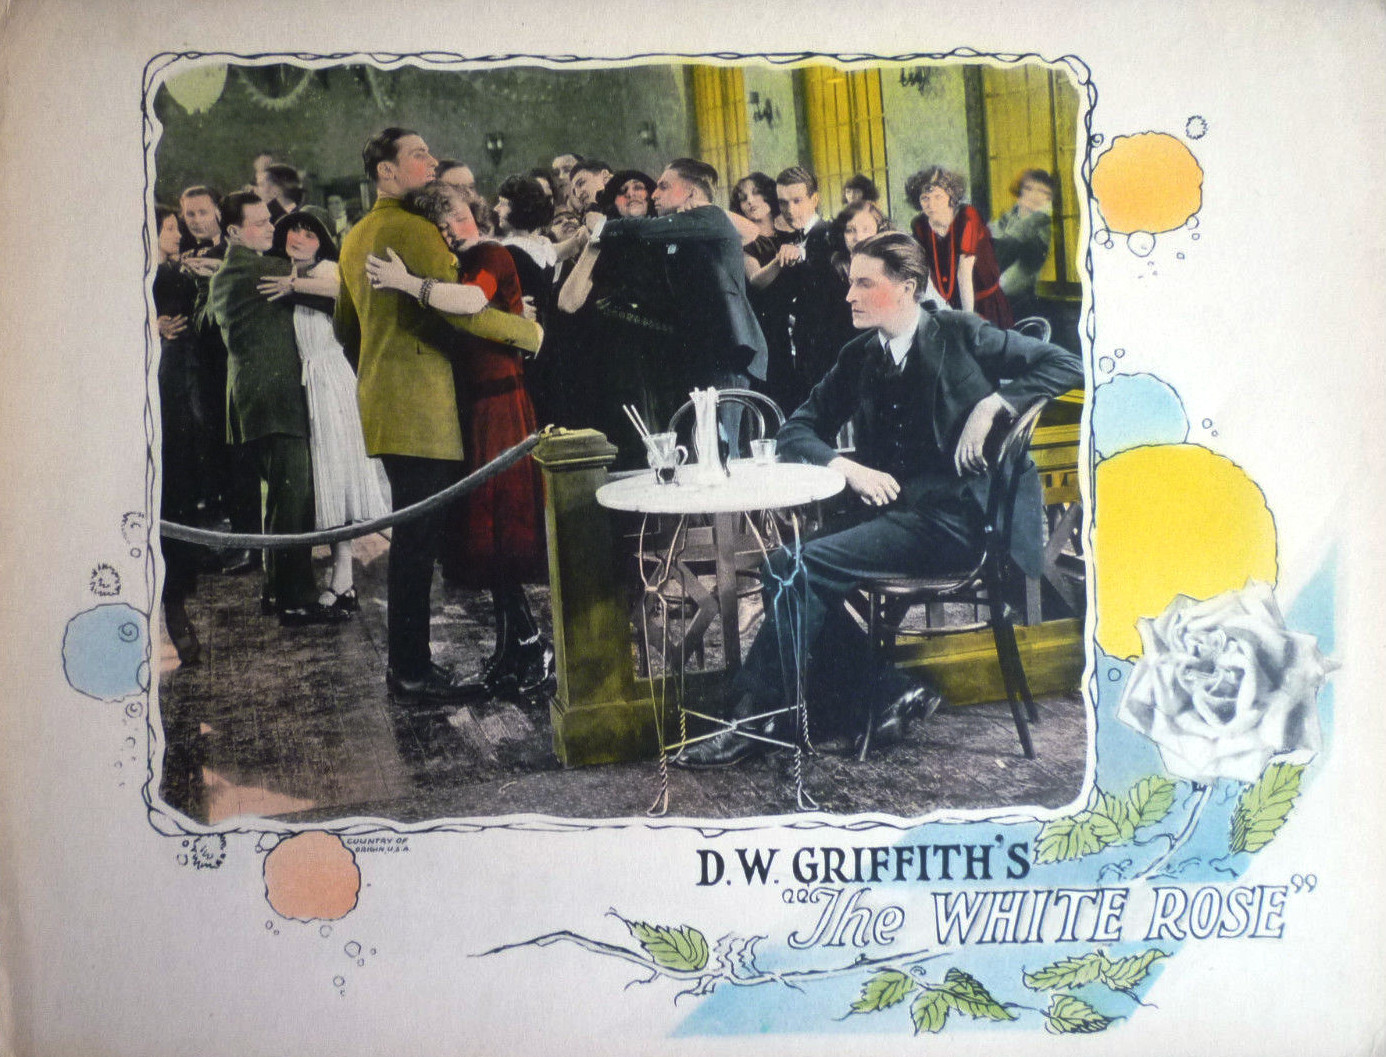 D.W. Griffith Facts